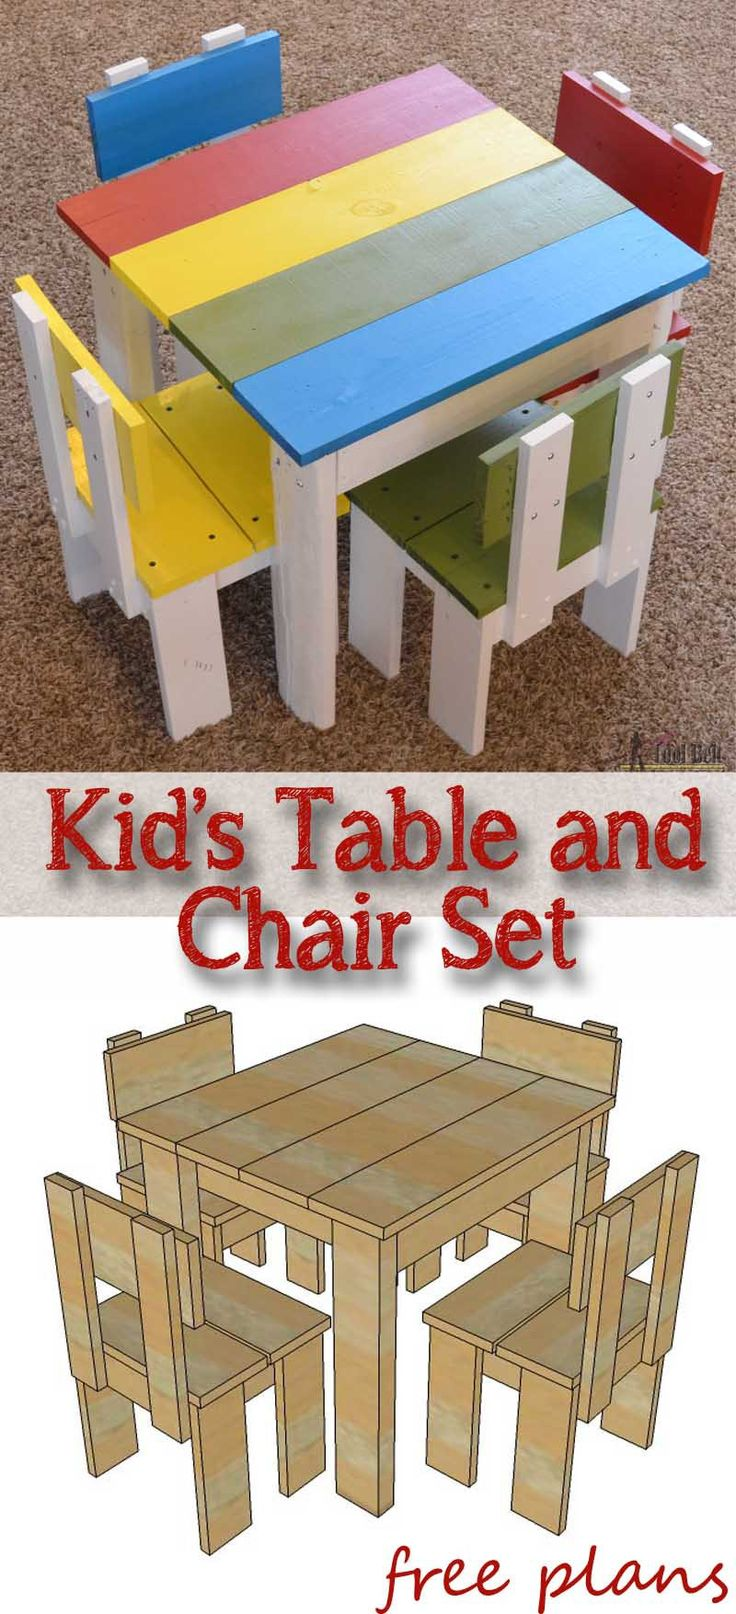 17 Best ideas about Kids Furniture on Pinterest | Diy kids ...